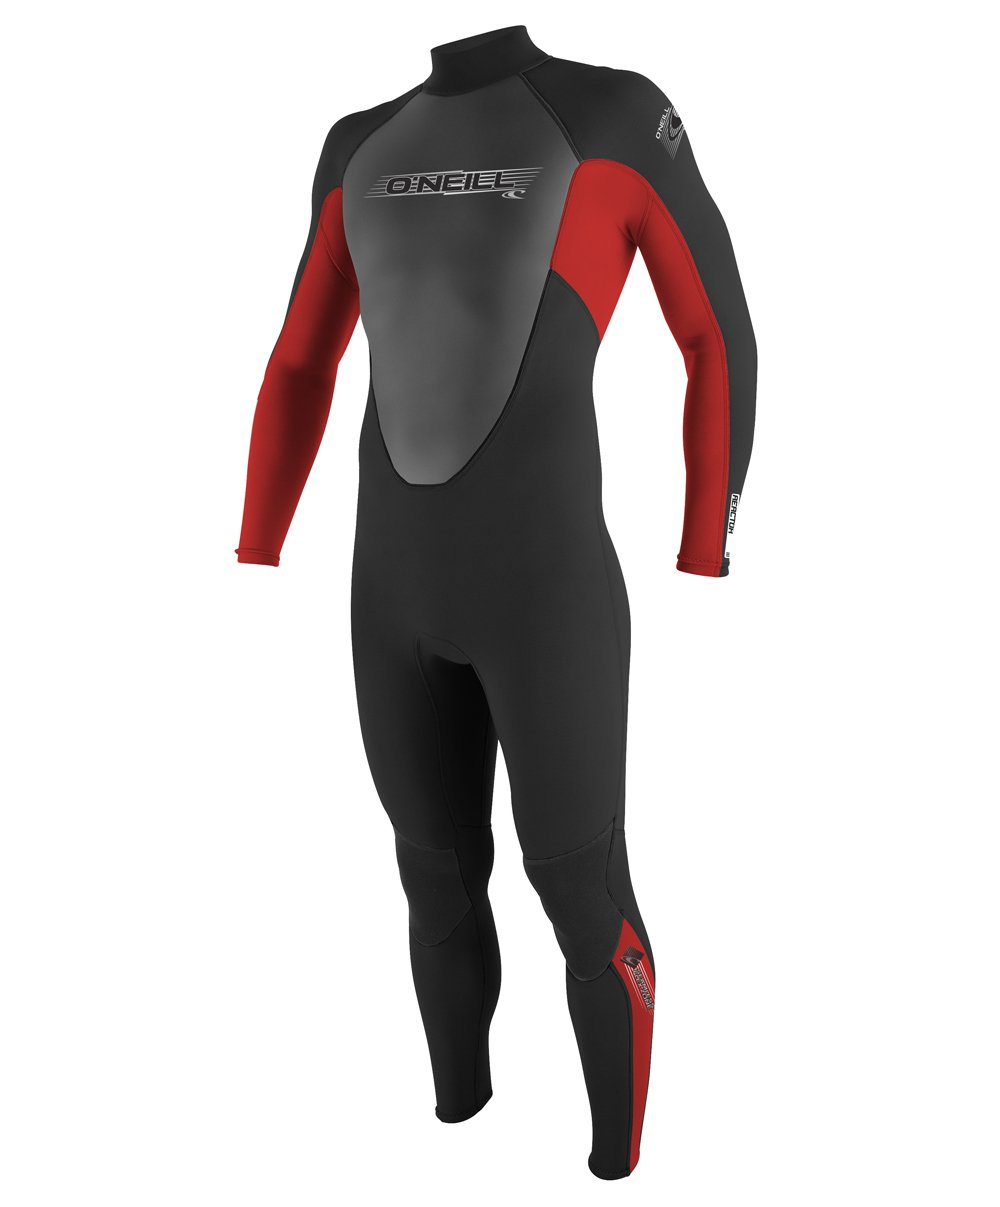 O'Neill Youth Reactor 3/2mm Back Zip Full Wetsuit, Black/Red/Graphite, 8 by O'Neill Wetsuits (Image #1)